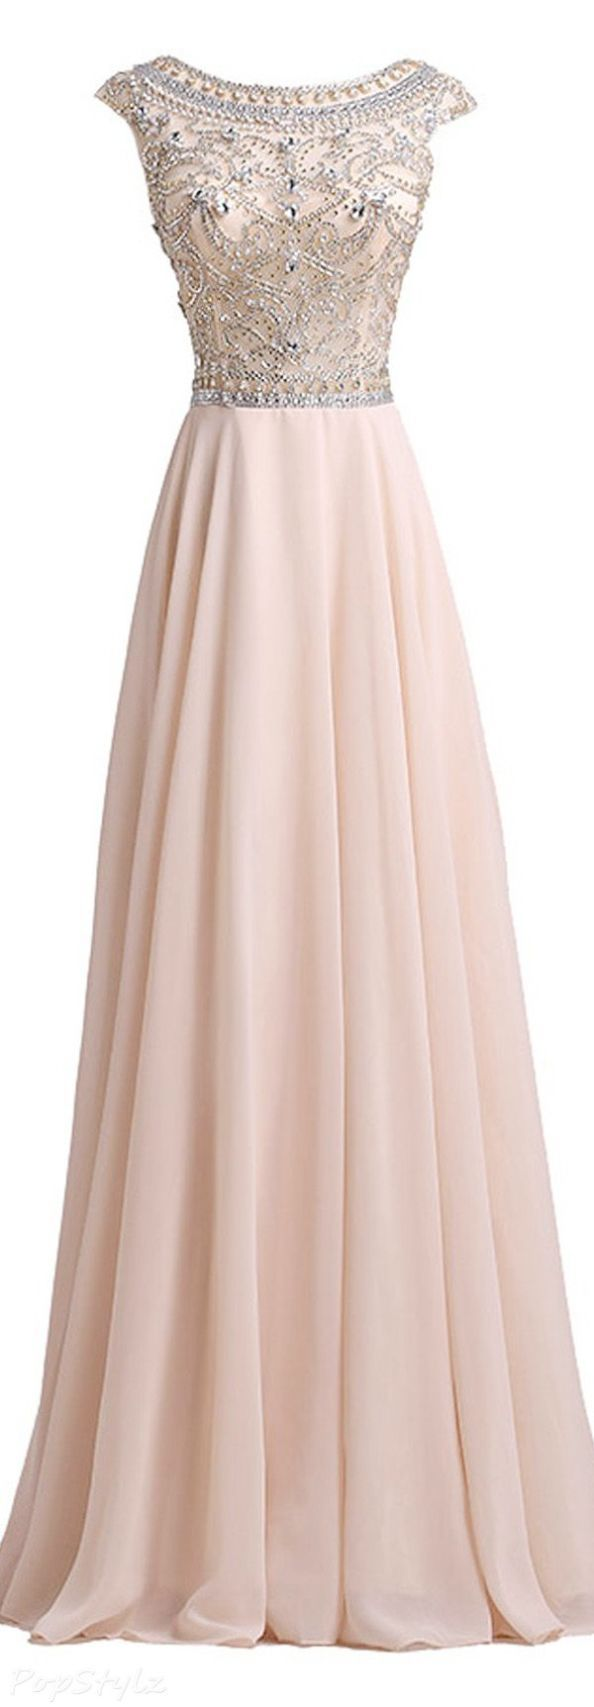 Evening gown hairstyles formal gown stores evening dresses